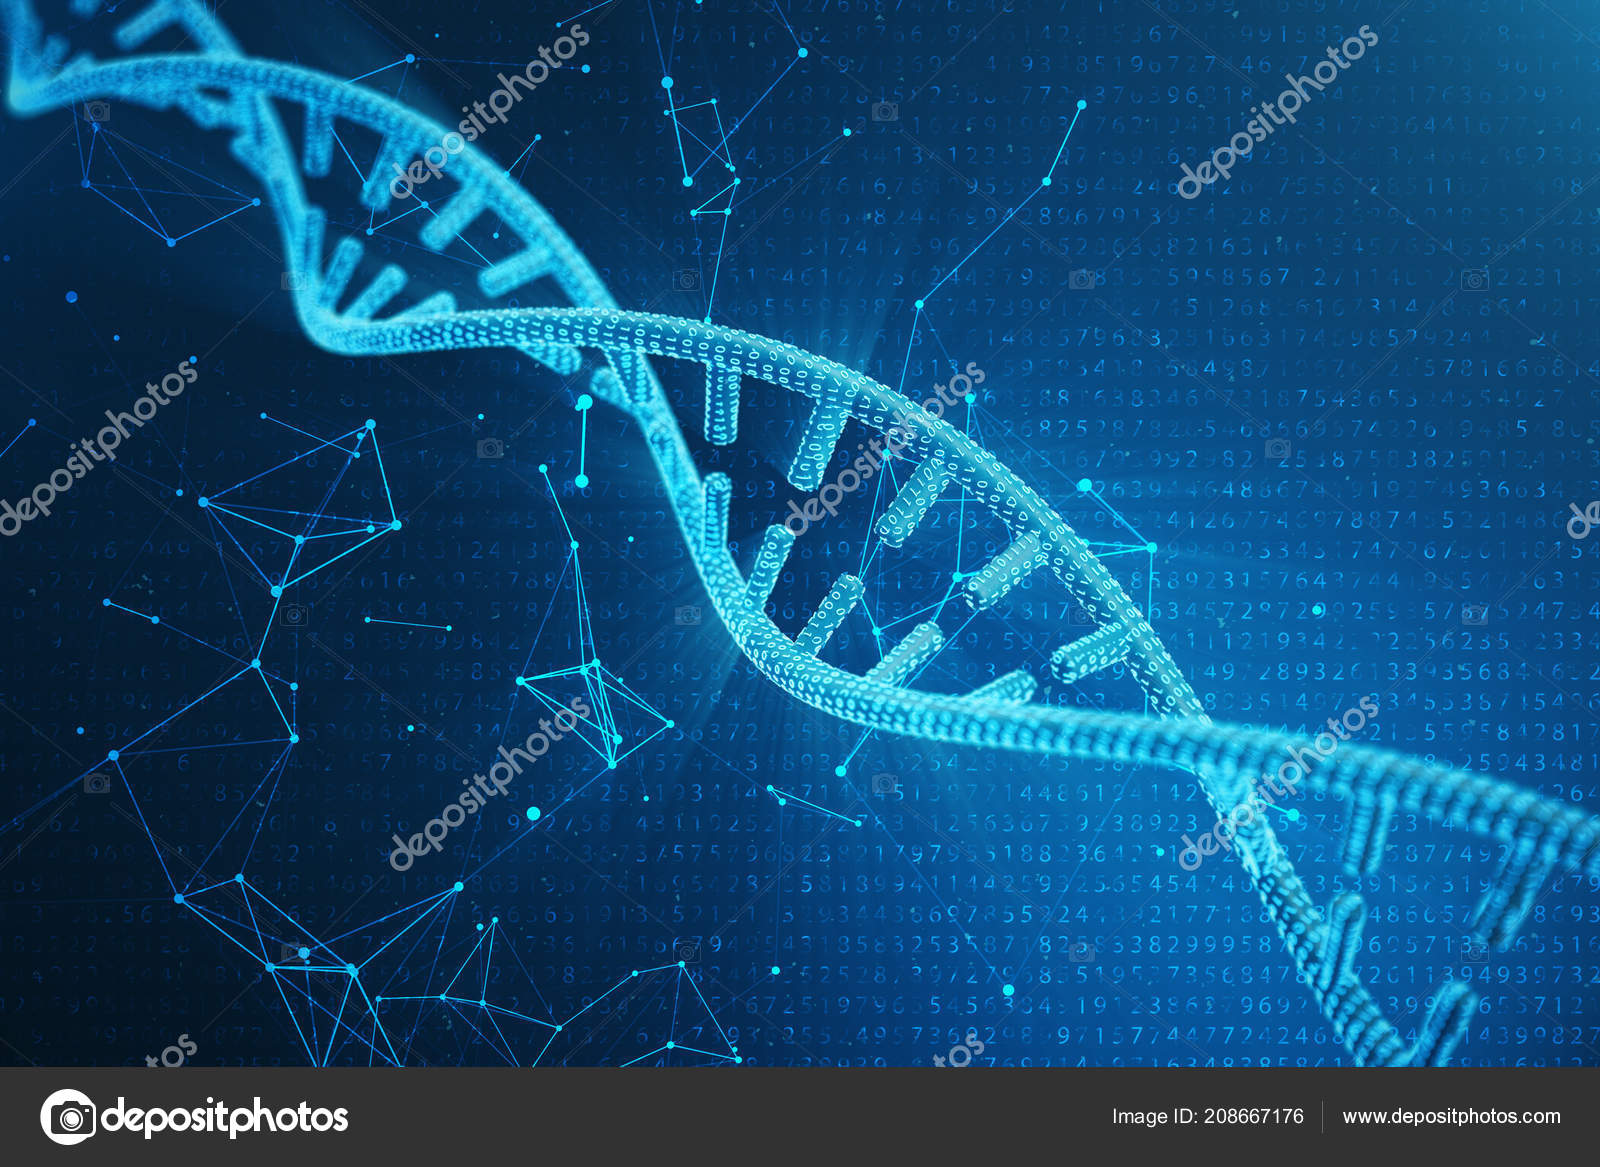 Digital Dna Molecule Structure Concept Binary Code Human